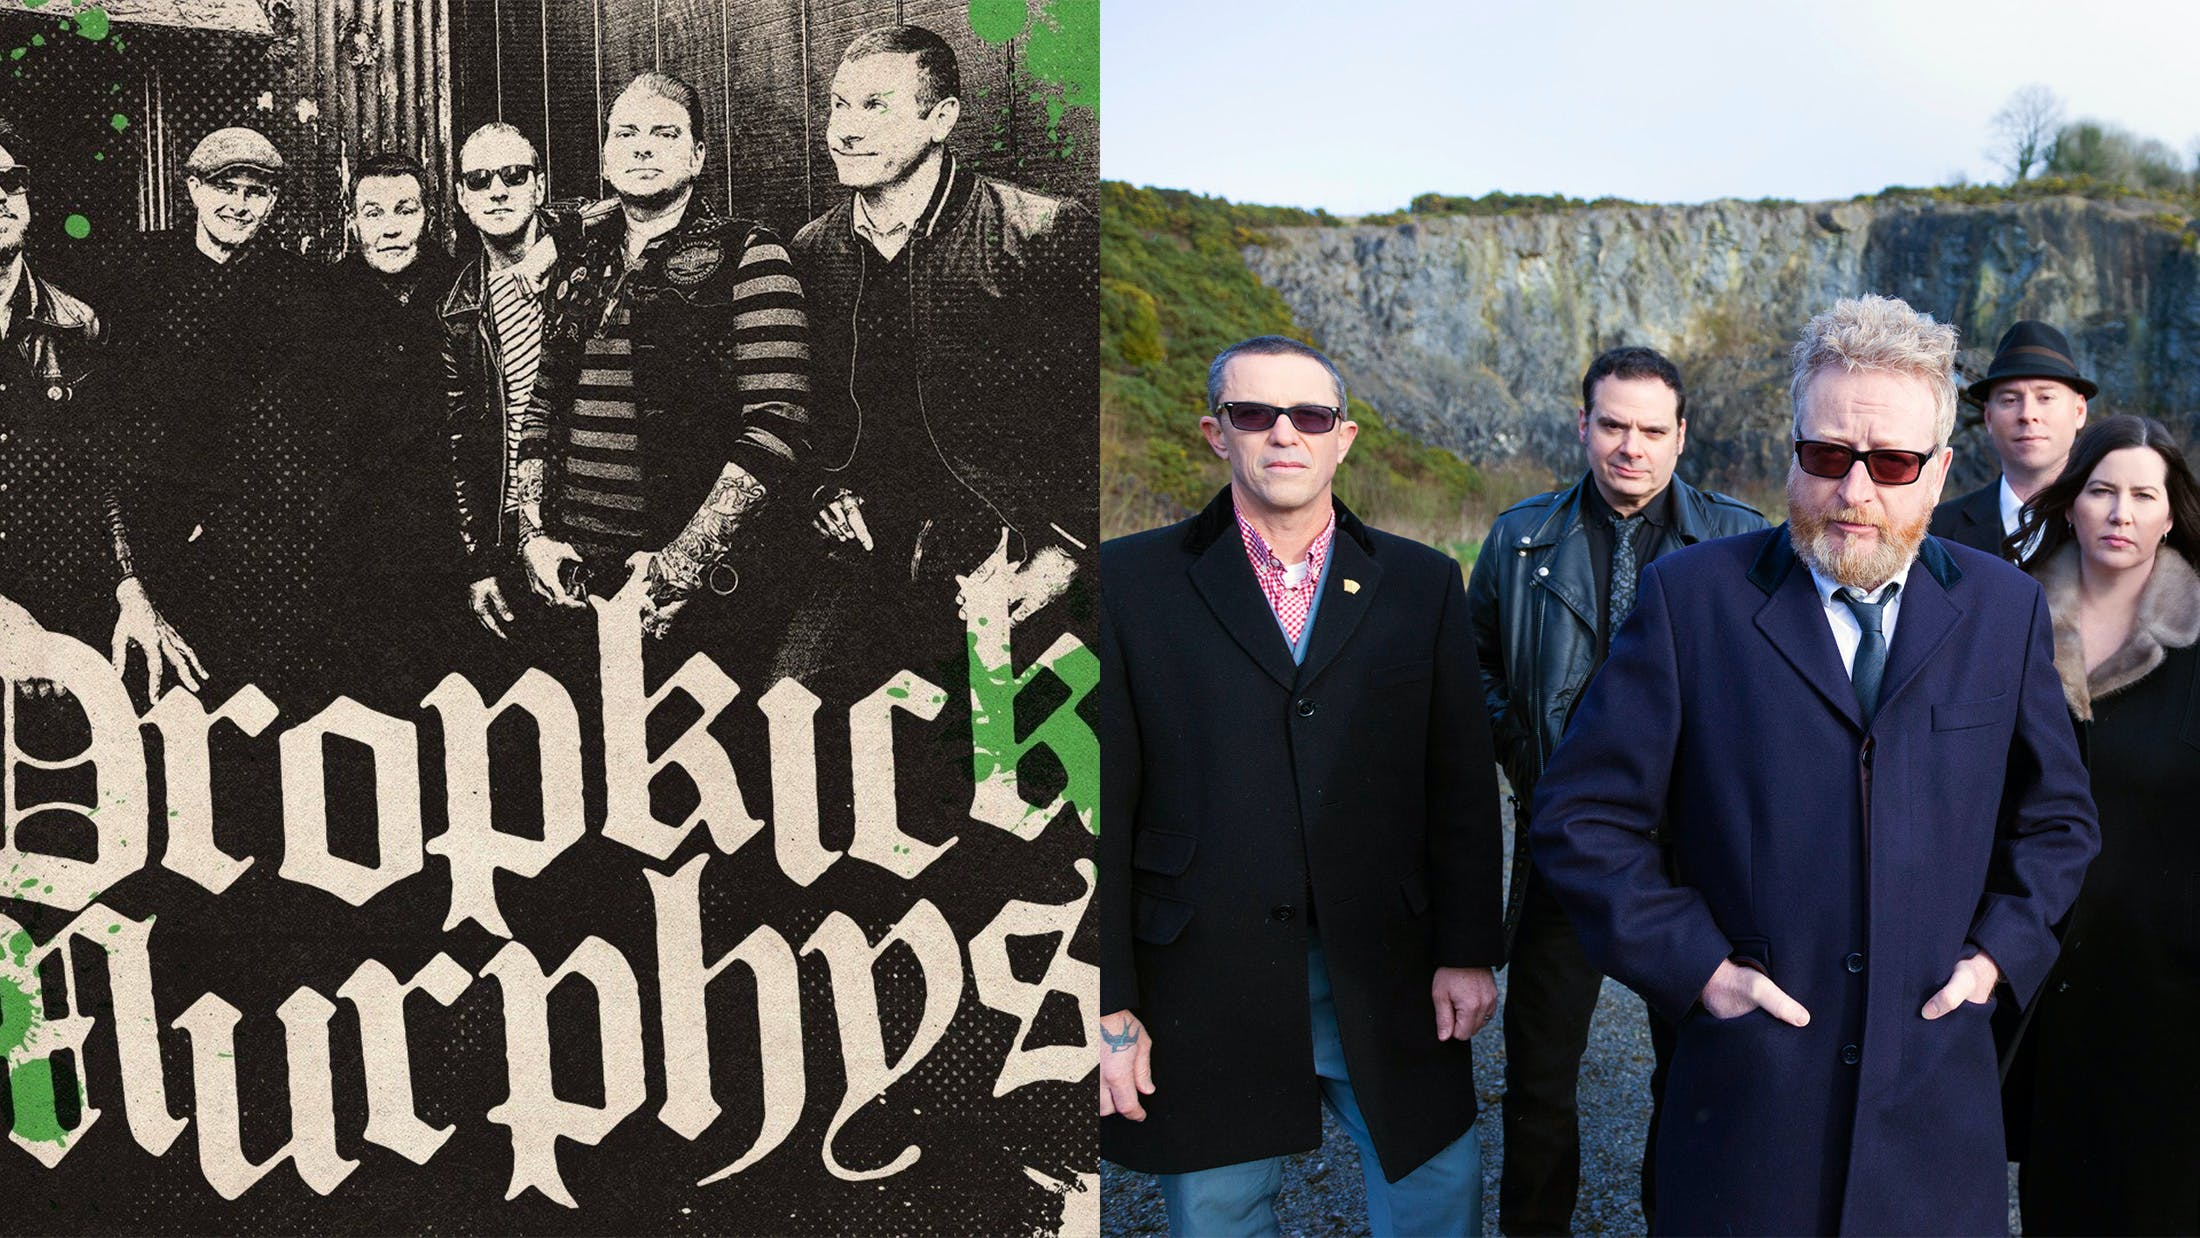 Dropkick Murphys And Flogging Molly Are Touring Together In June